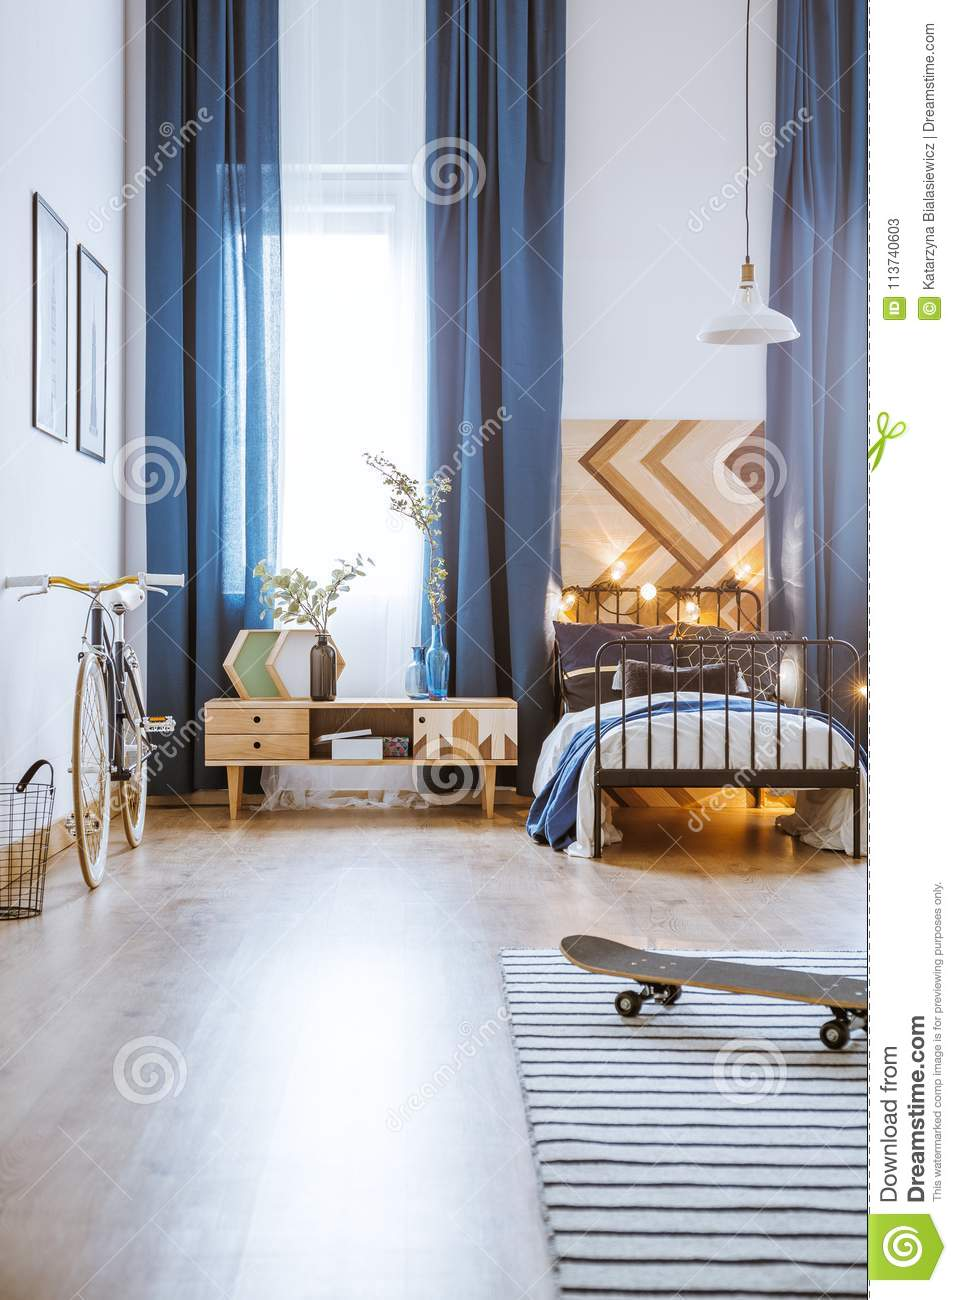 Modern Bedroom For Teenager Stock Image - Image of plants ...